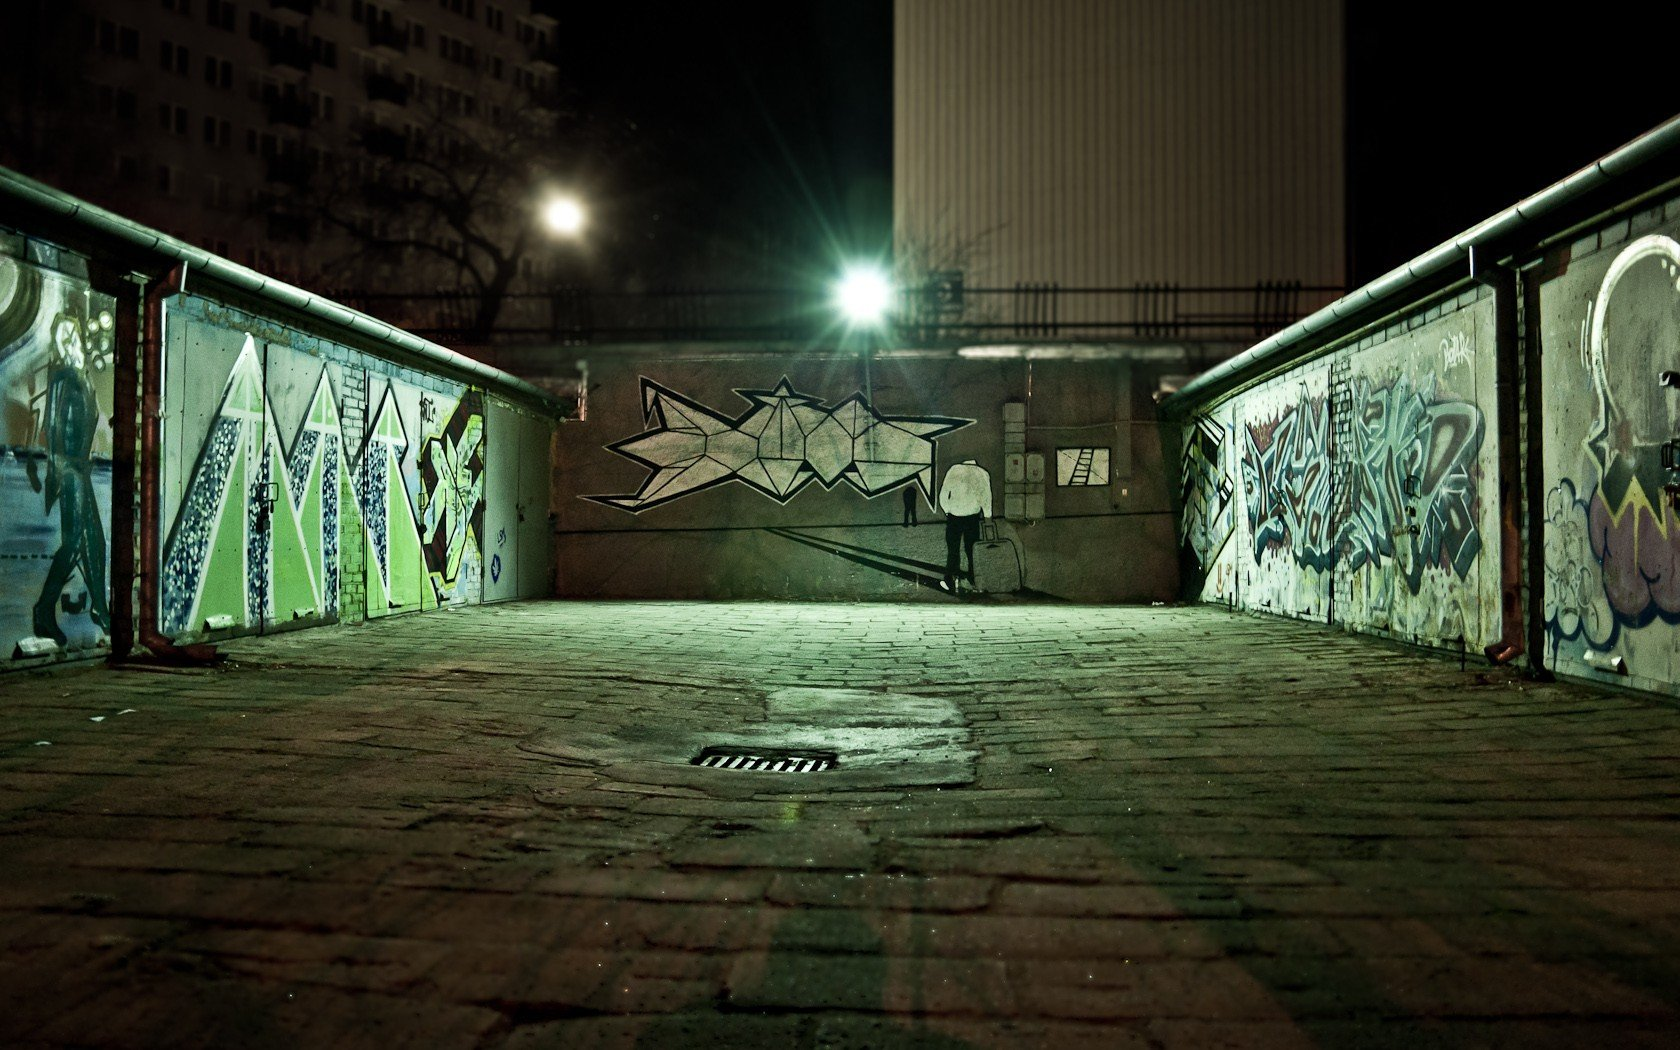 Light Green Cityscapes Night Graffiti Urban Poland - Night City Sidewalk Background , HD Wallpaper & Backgrounds